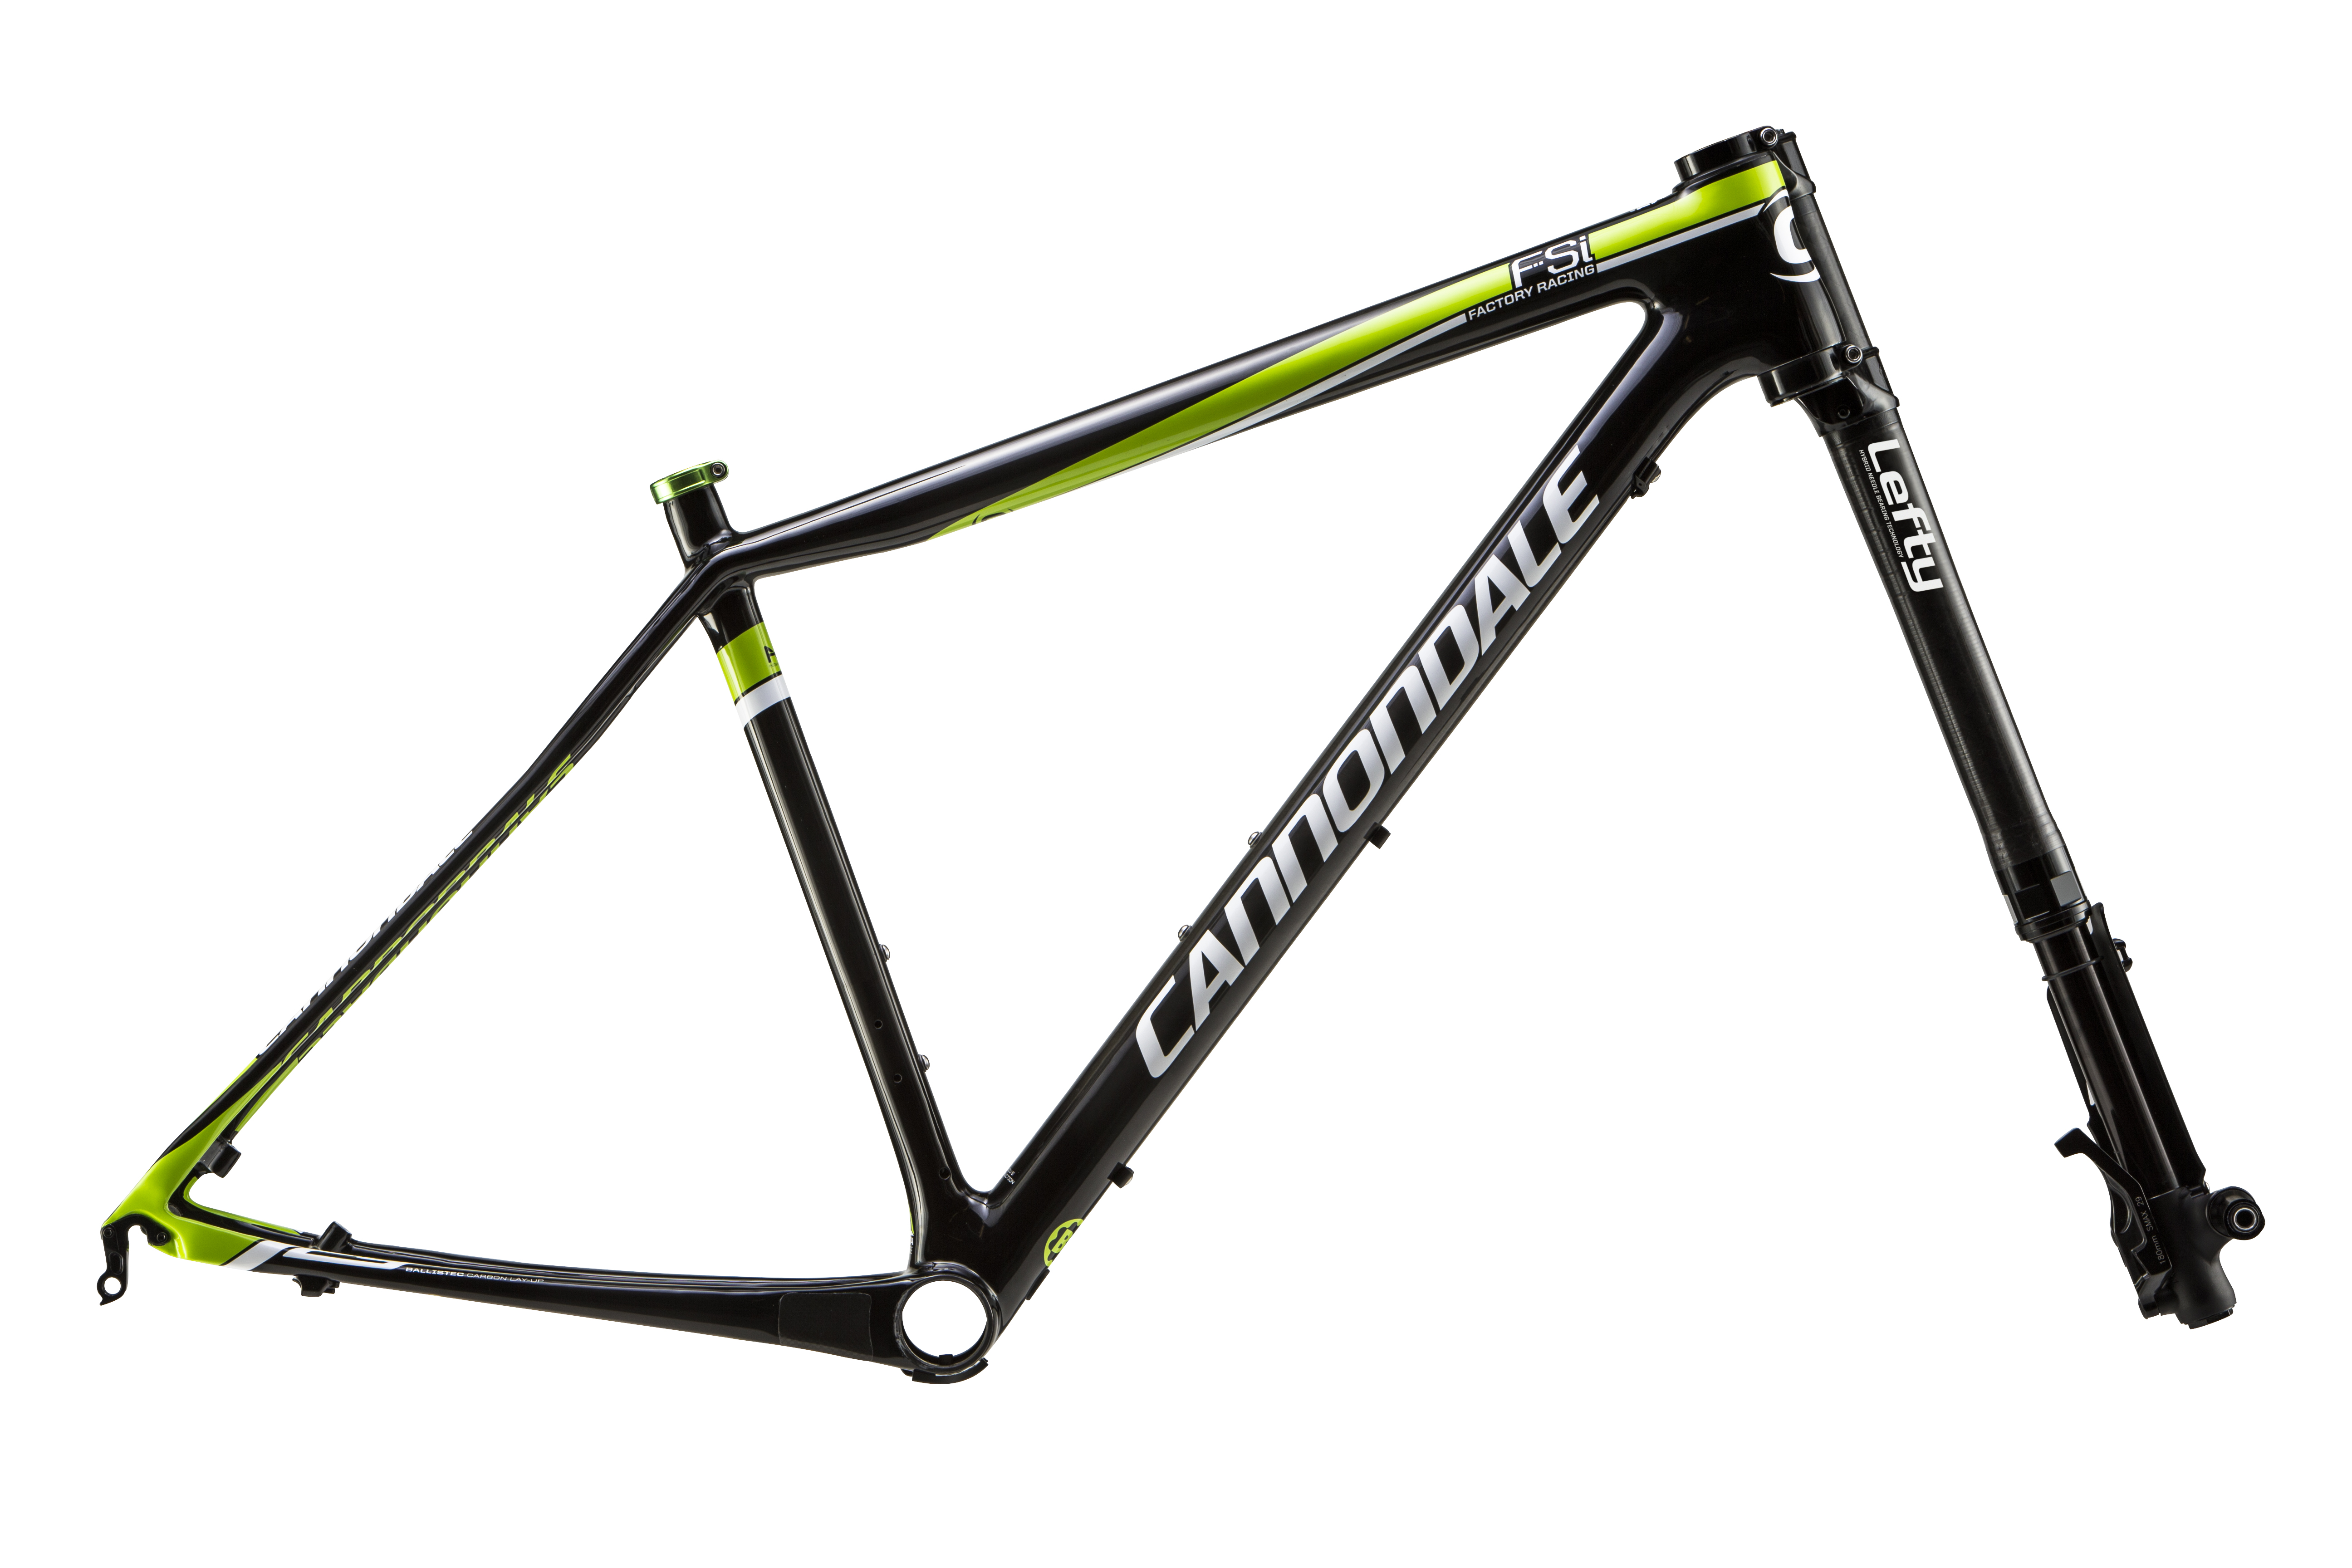 Cannondale Fsi The Fast Hardtail Reinvigorated